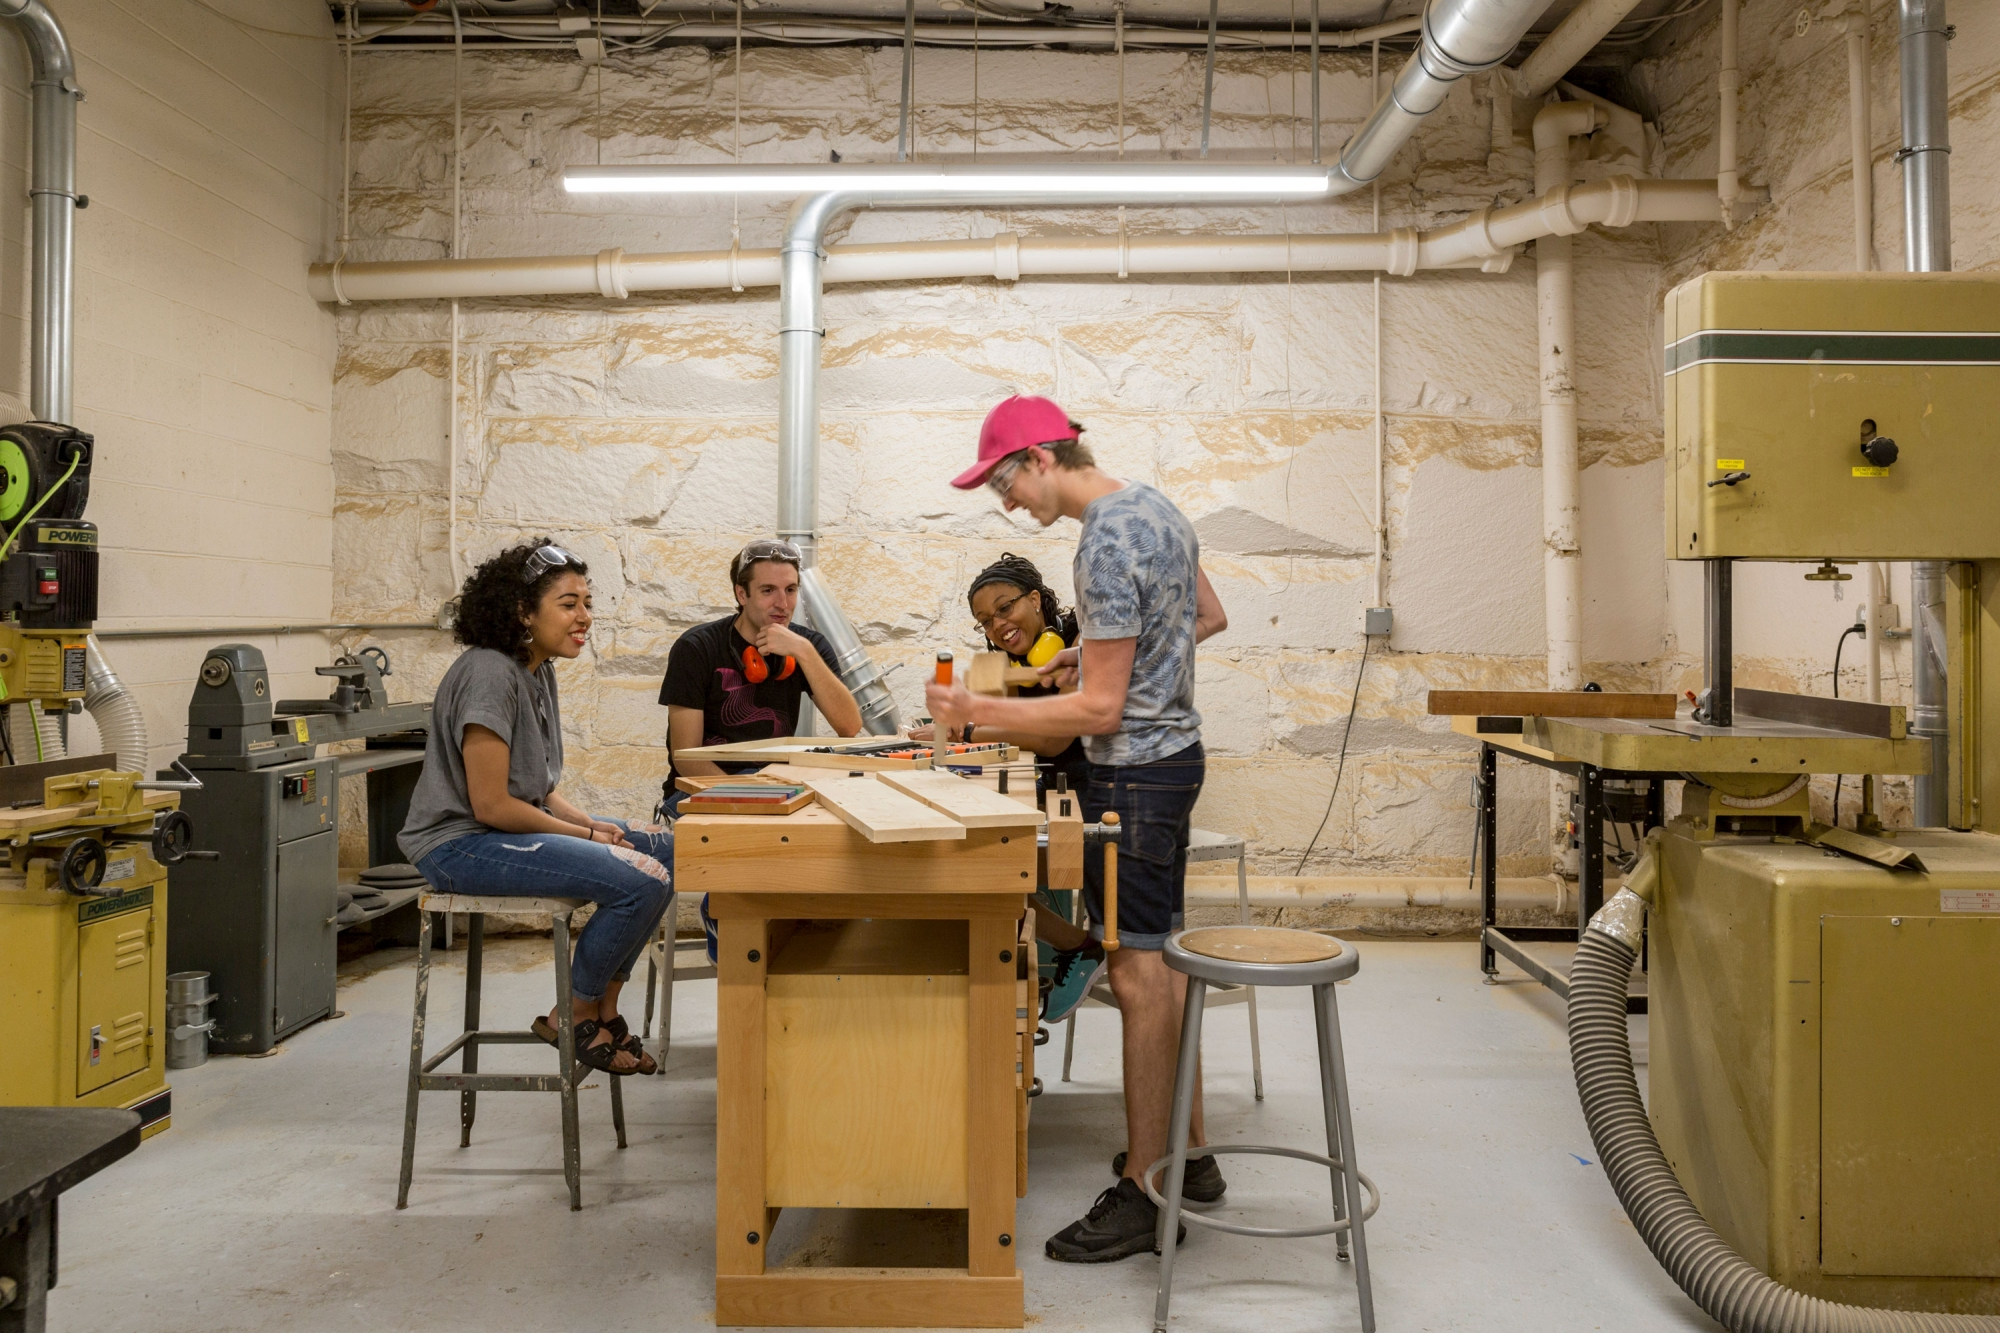 Students working with woodworking tools